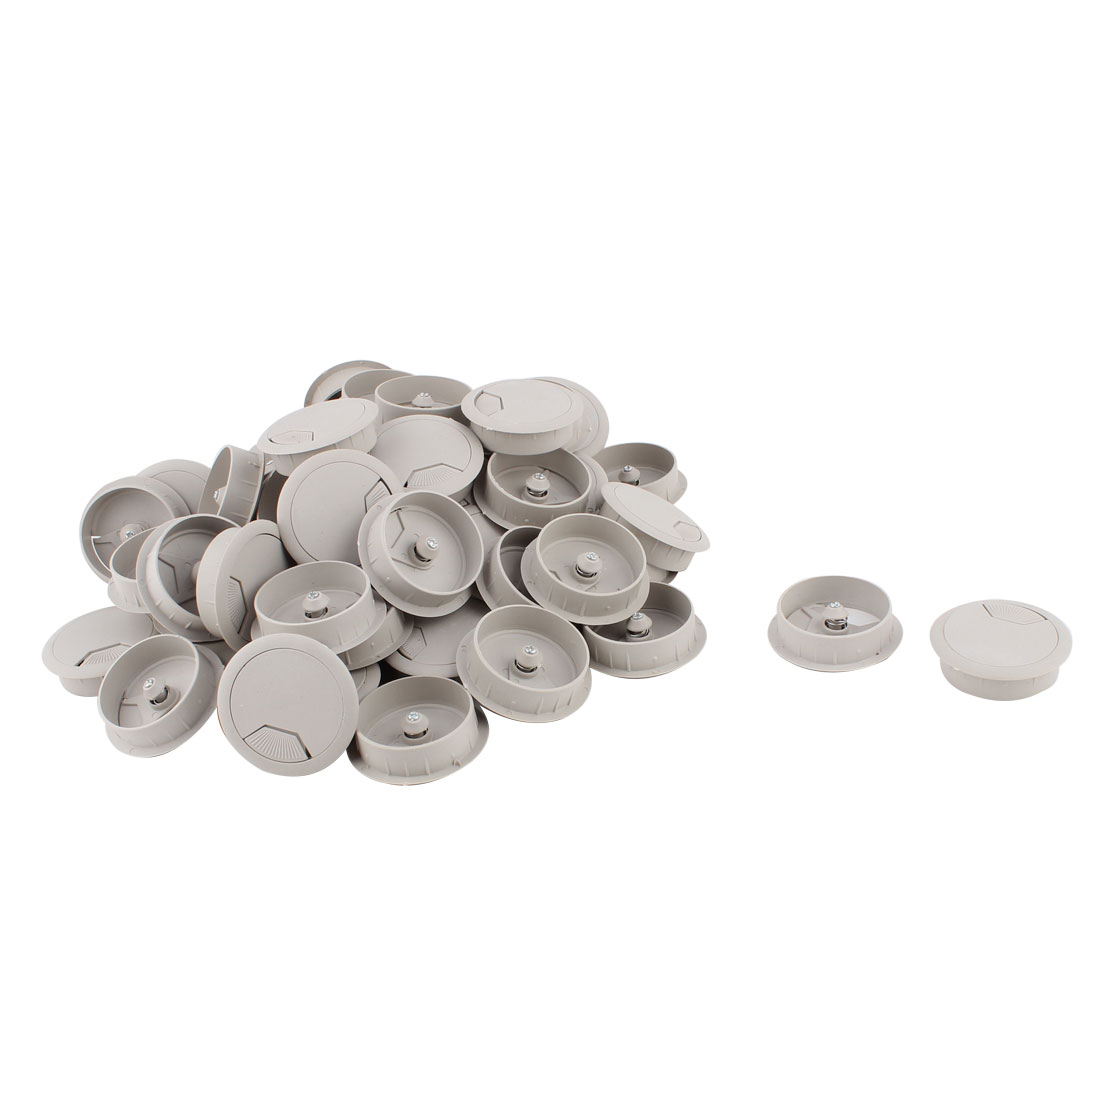 Computer Desk Table Plastic Grommet Wire Cord Cable Hole Cover Gray 50mm Dia 60pcs